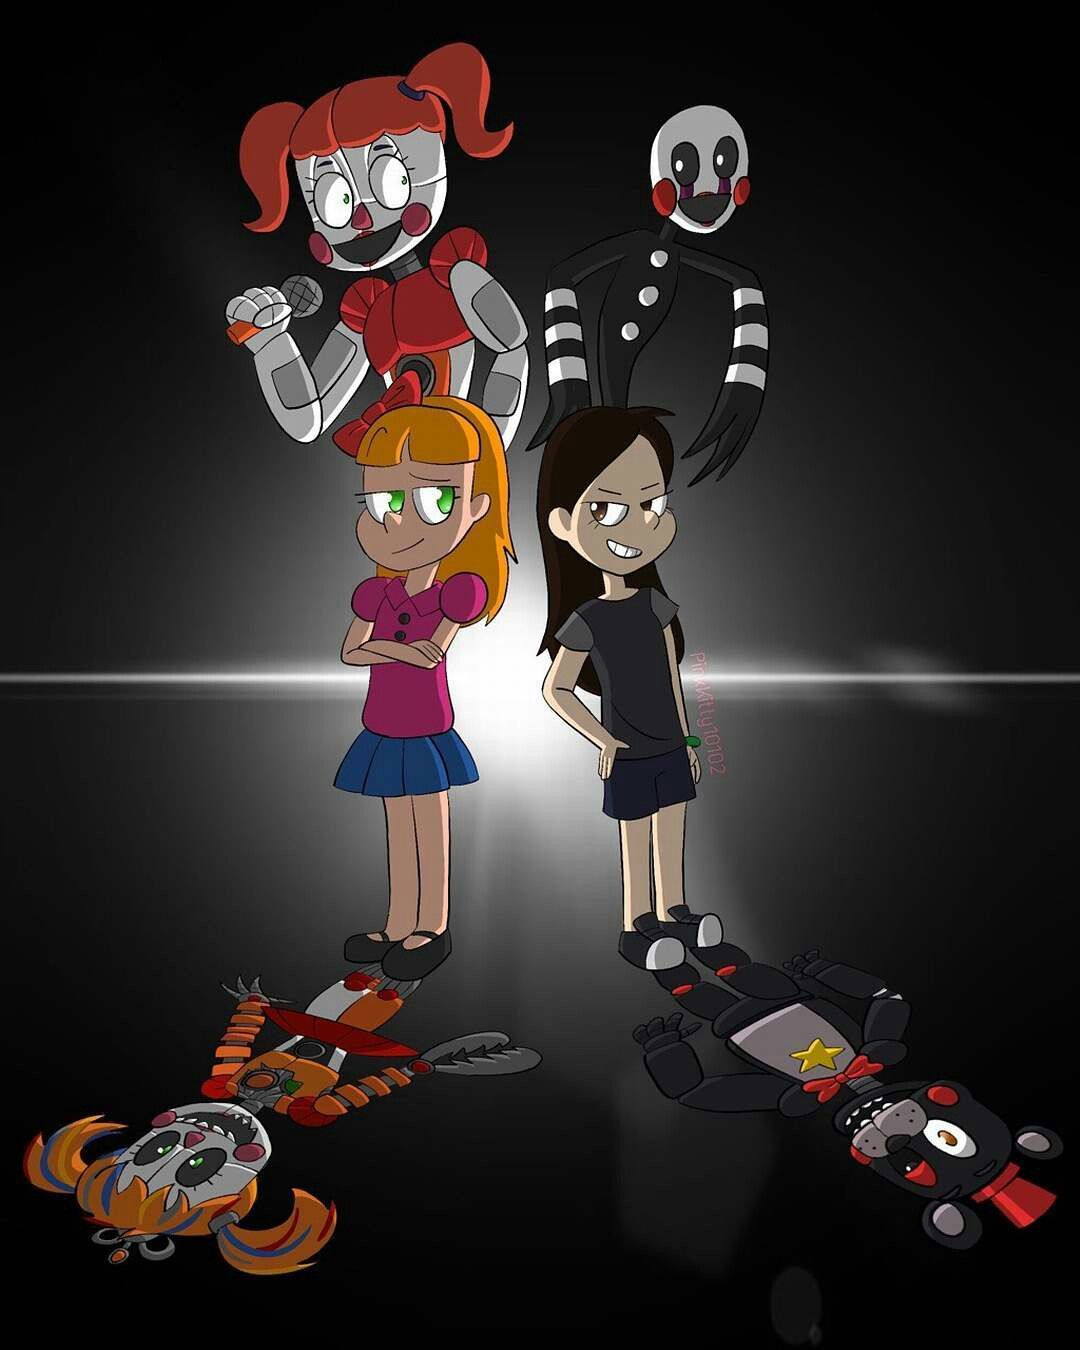 Pin By Elizabeth Afton Dibujos On Fnaf Fnaf Anime Fnaf Fnaf Baby